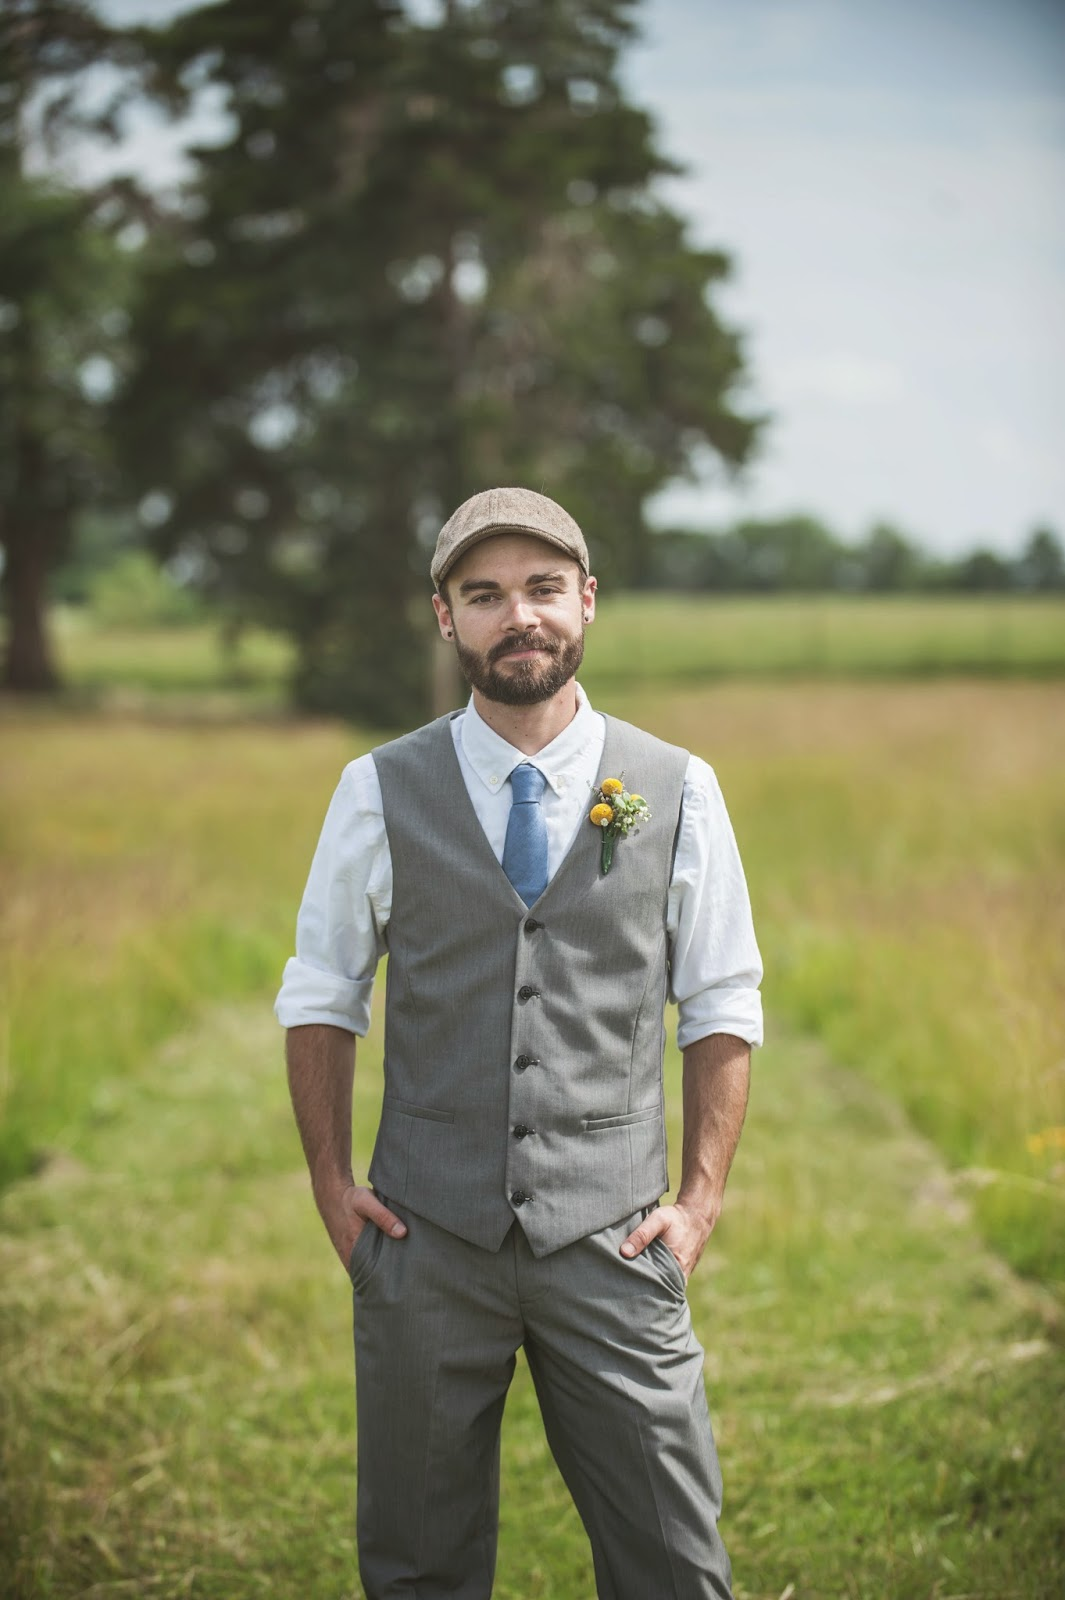 Vintage groom in gray